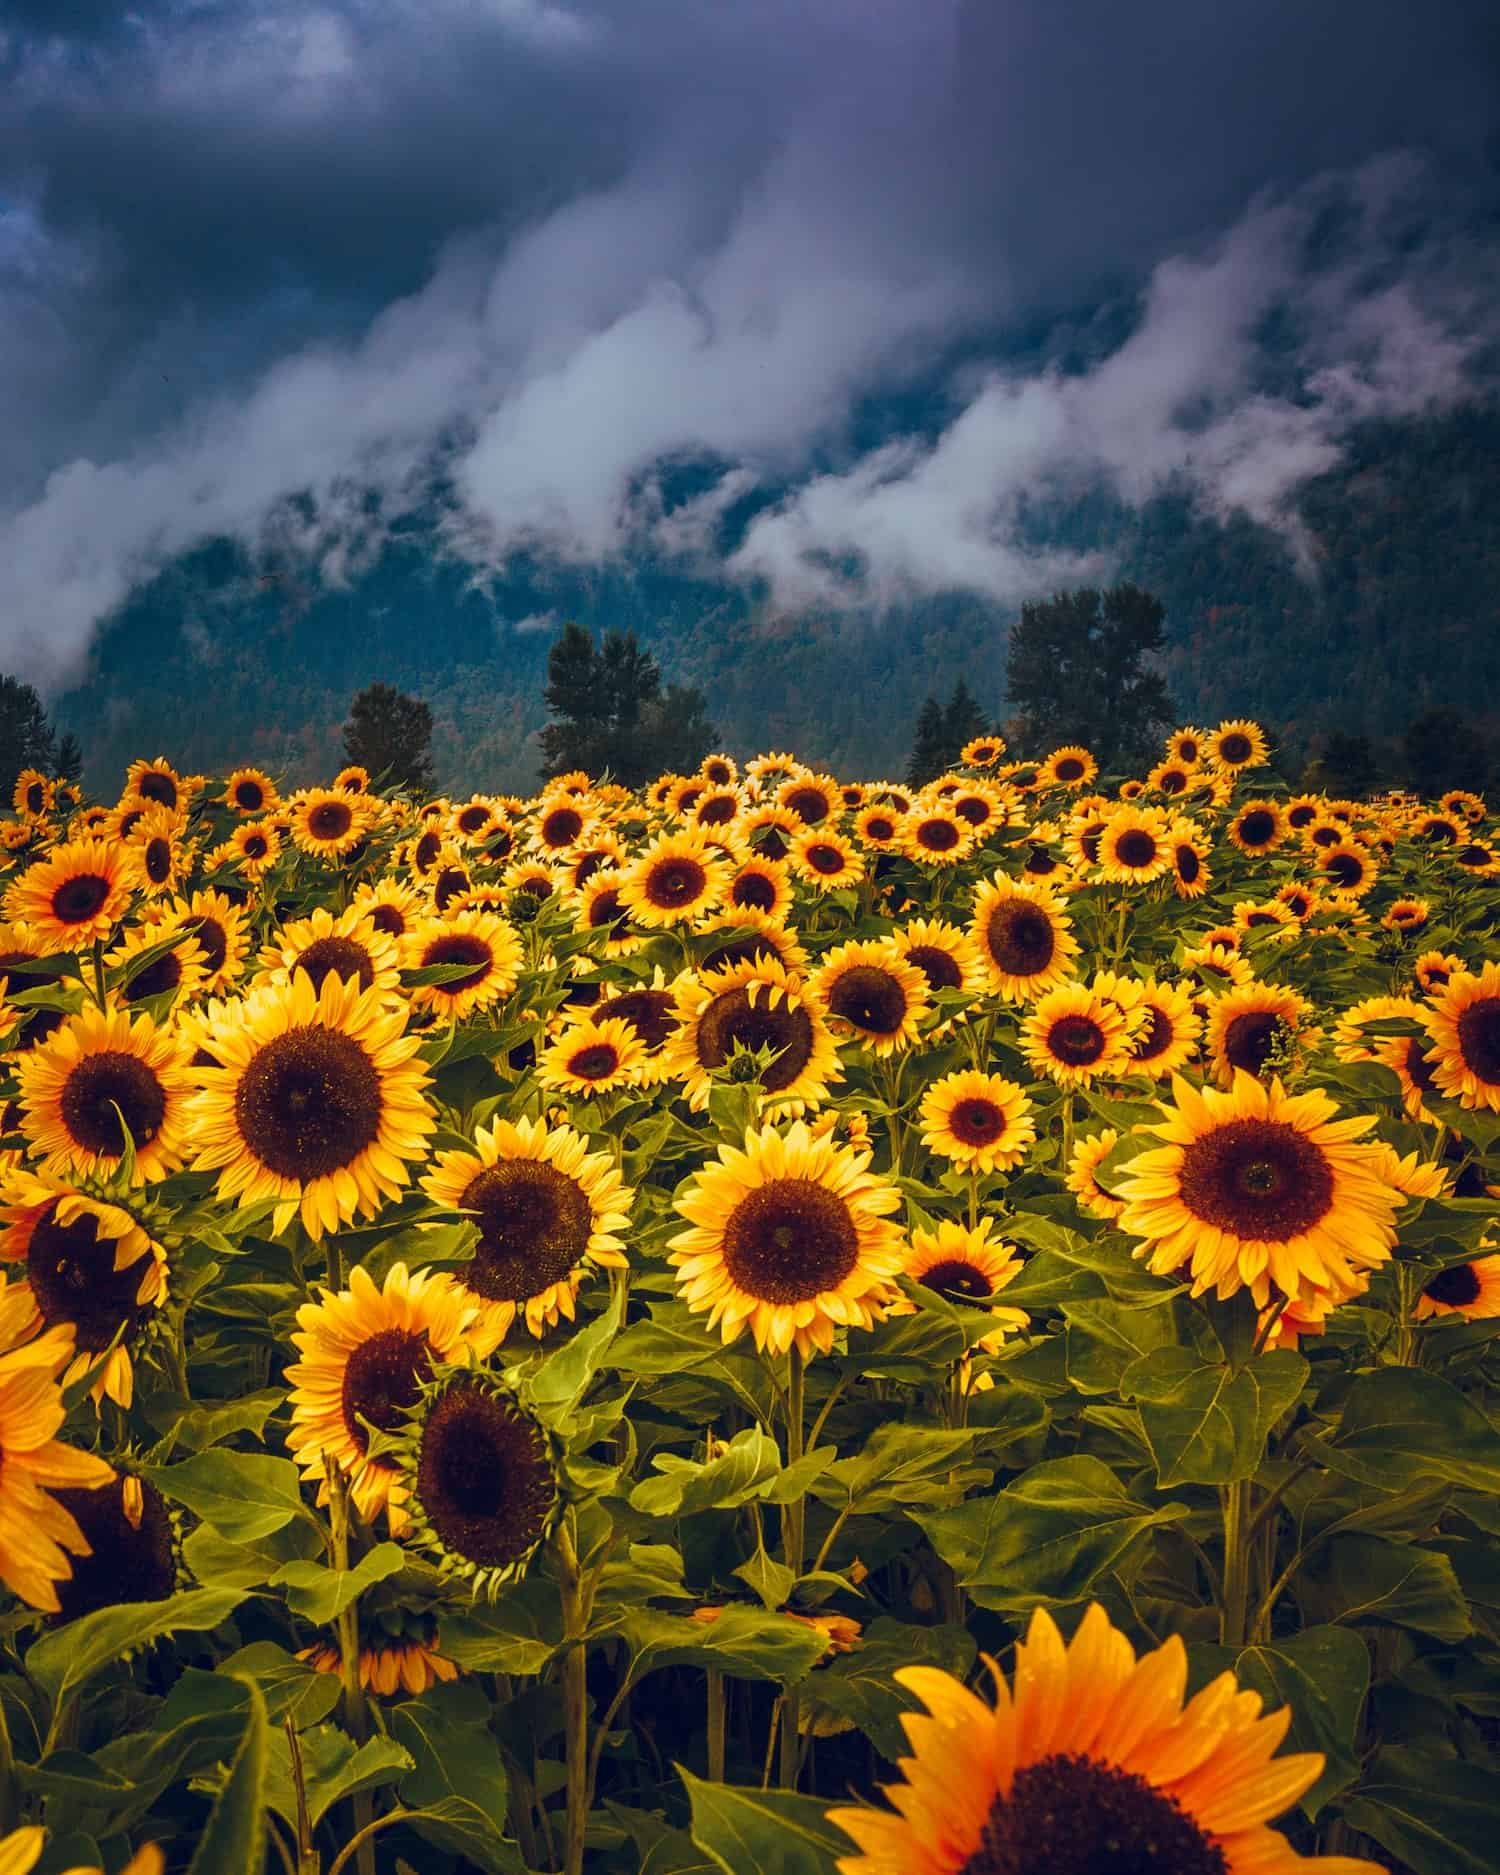 Sunflowers with a cloudy background